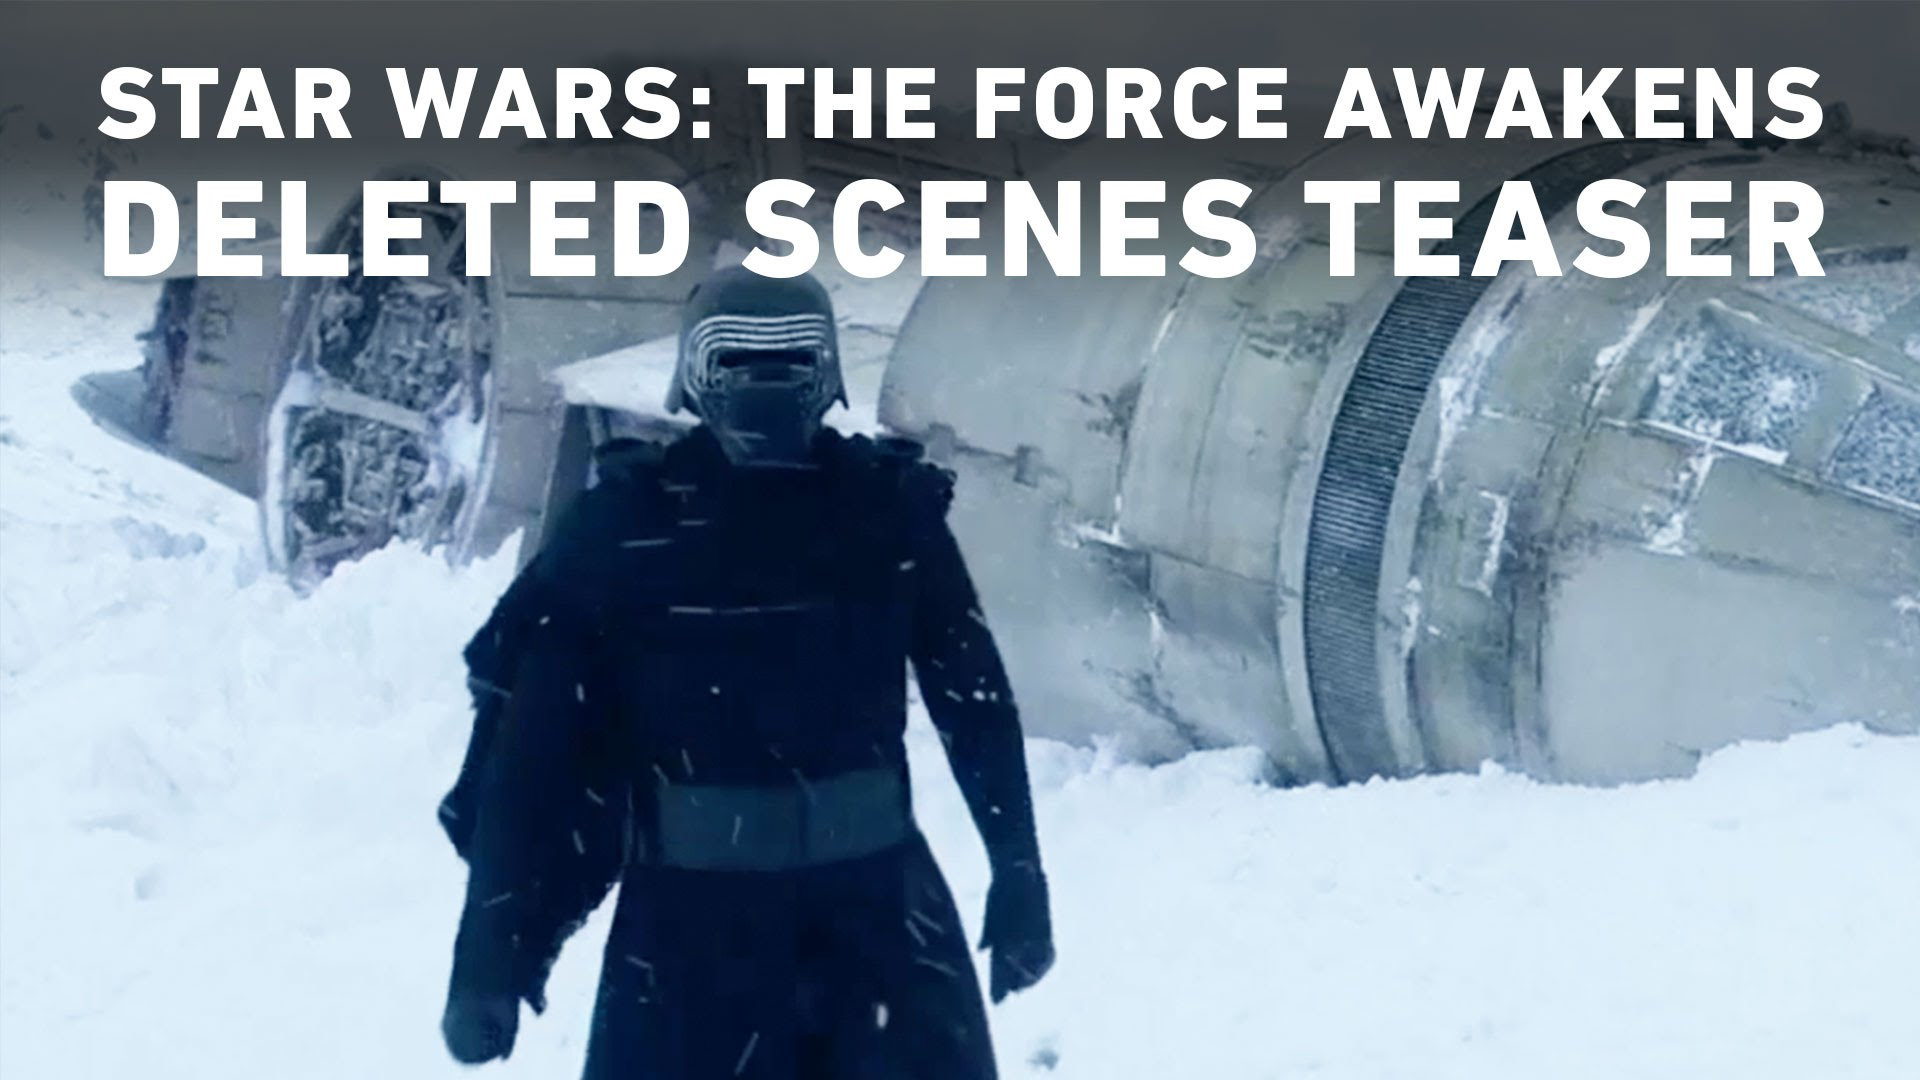 Star Wars: The Force Awakens Deleted Scenes Teaser